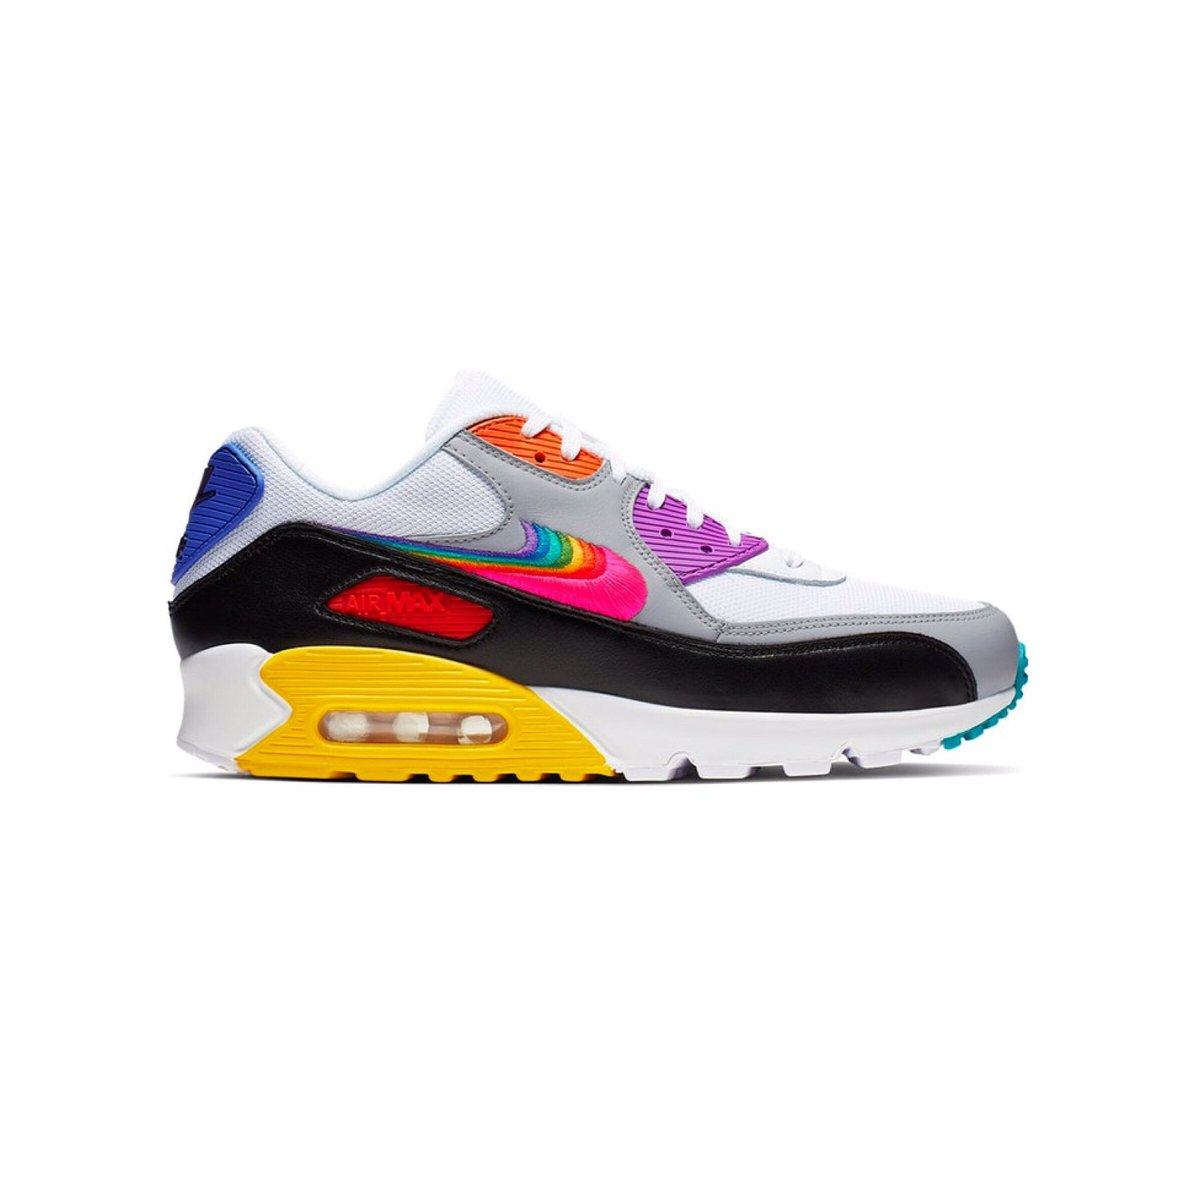 half off 46460 0fcac NIKE AIR MAX 90 BETRUE PRICE : 7900 - 12900 thb SIZE (US ...